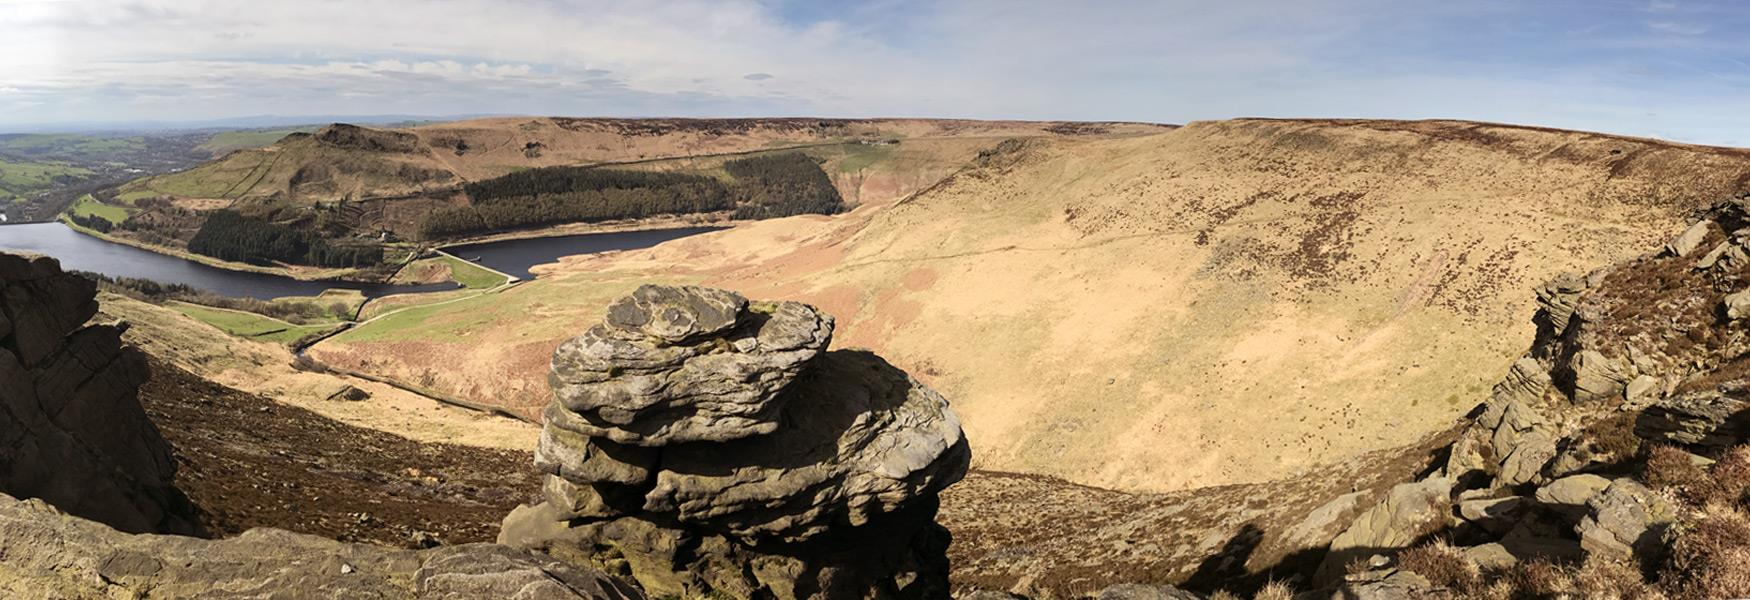 Get a taste for adventure in the Peak District this year